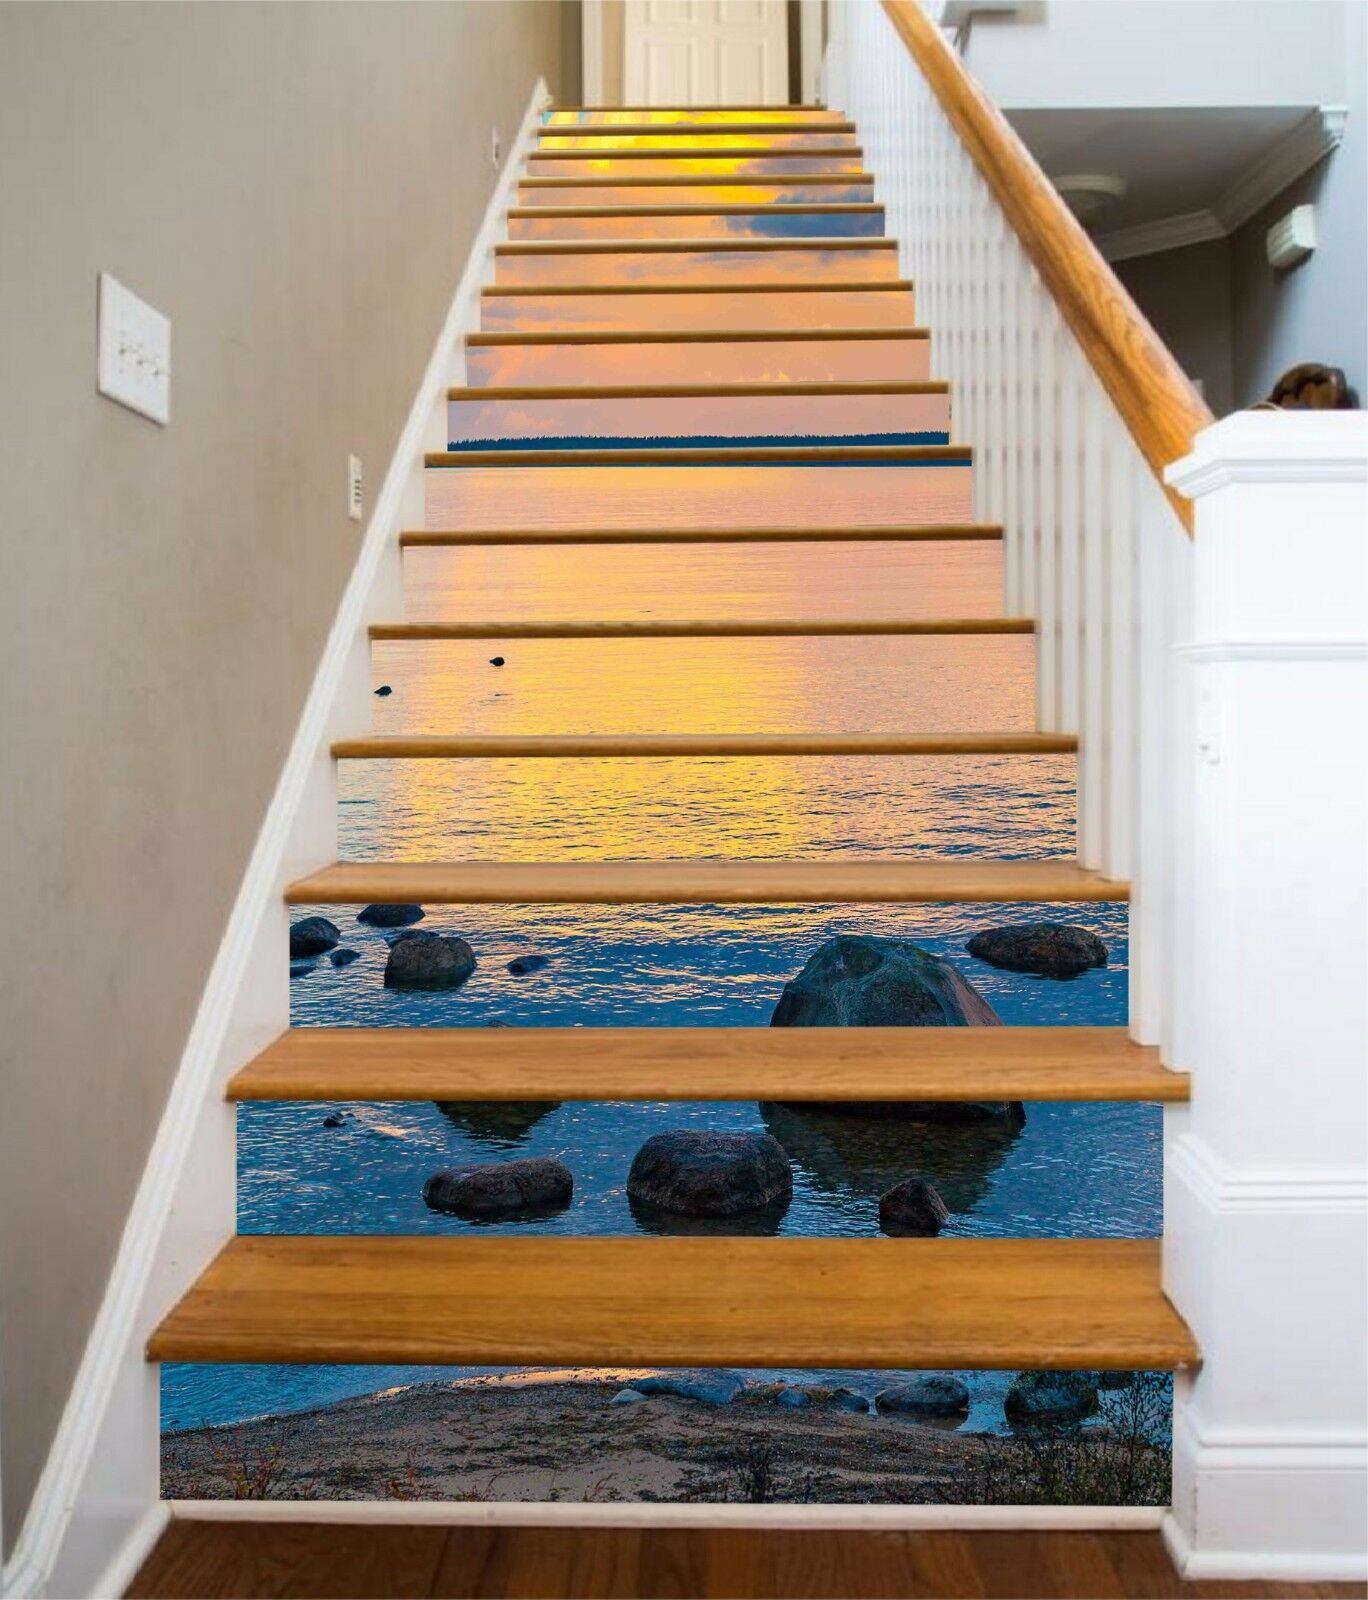 3D Sky sunset stone Stair Risers Decoration Photo Mural Vinyl Decal WandPapier AU